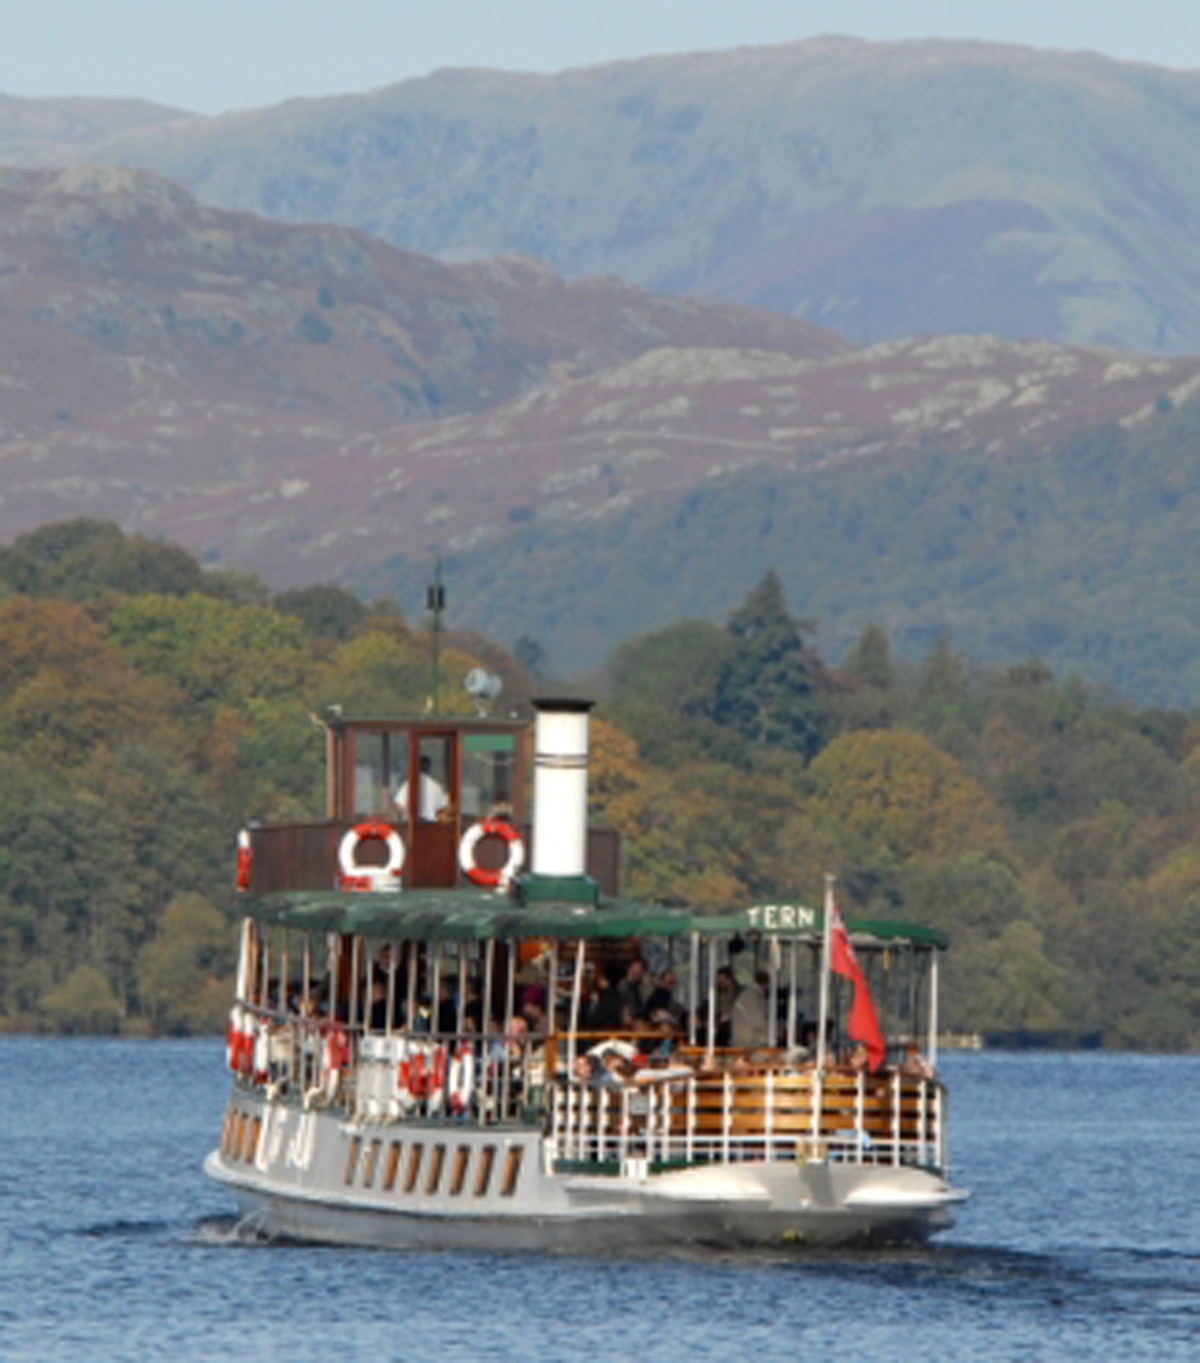 Firm cruises into the top 10 attractions